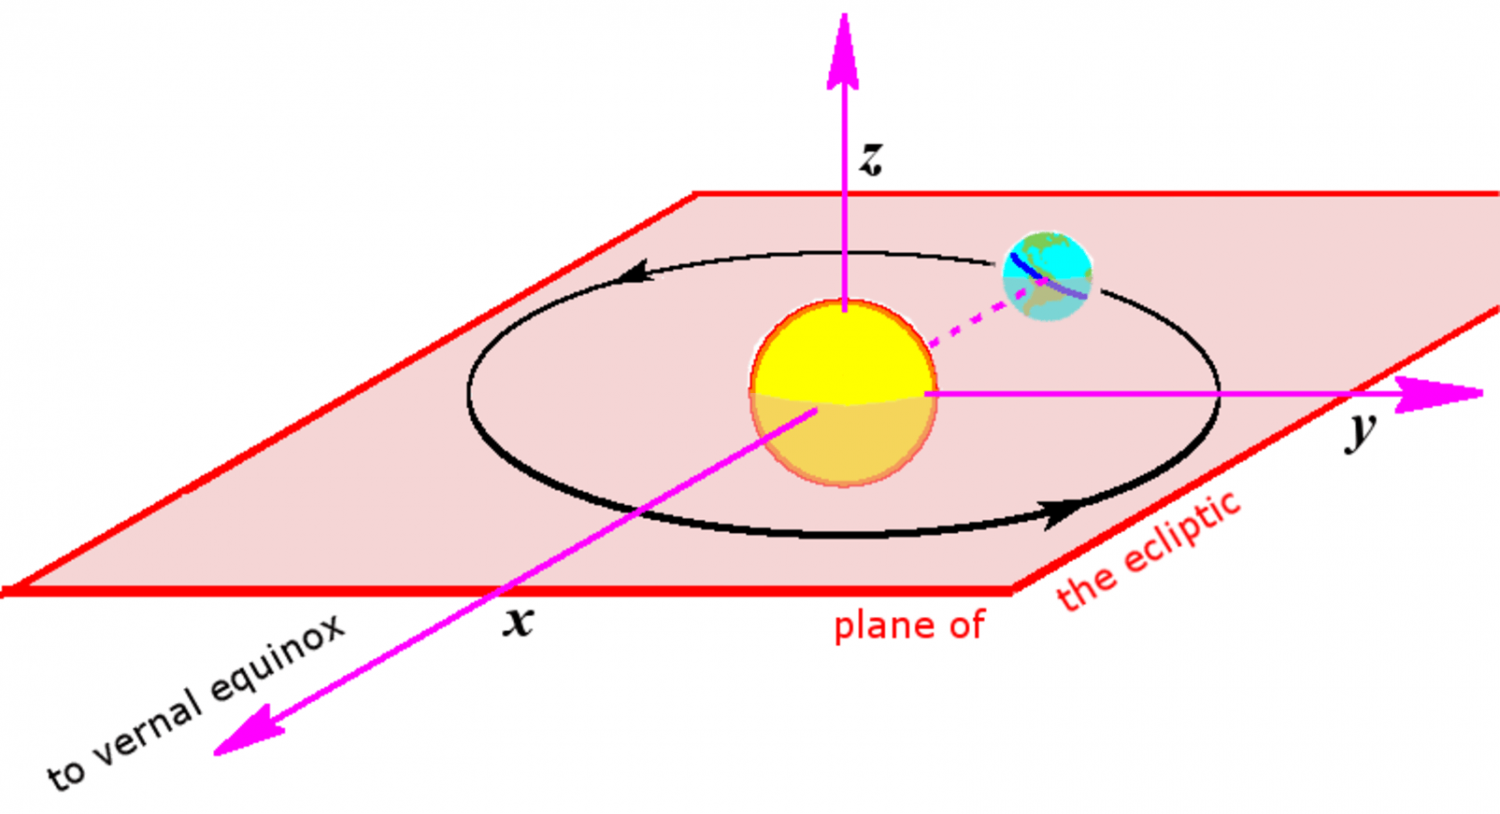 Fixing the faults in our stars faults in our stars right over the equator a diagram showing the suns position relative to the earth at the vernal equinox credit tfr000 cc by sa ccuart Image collections